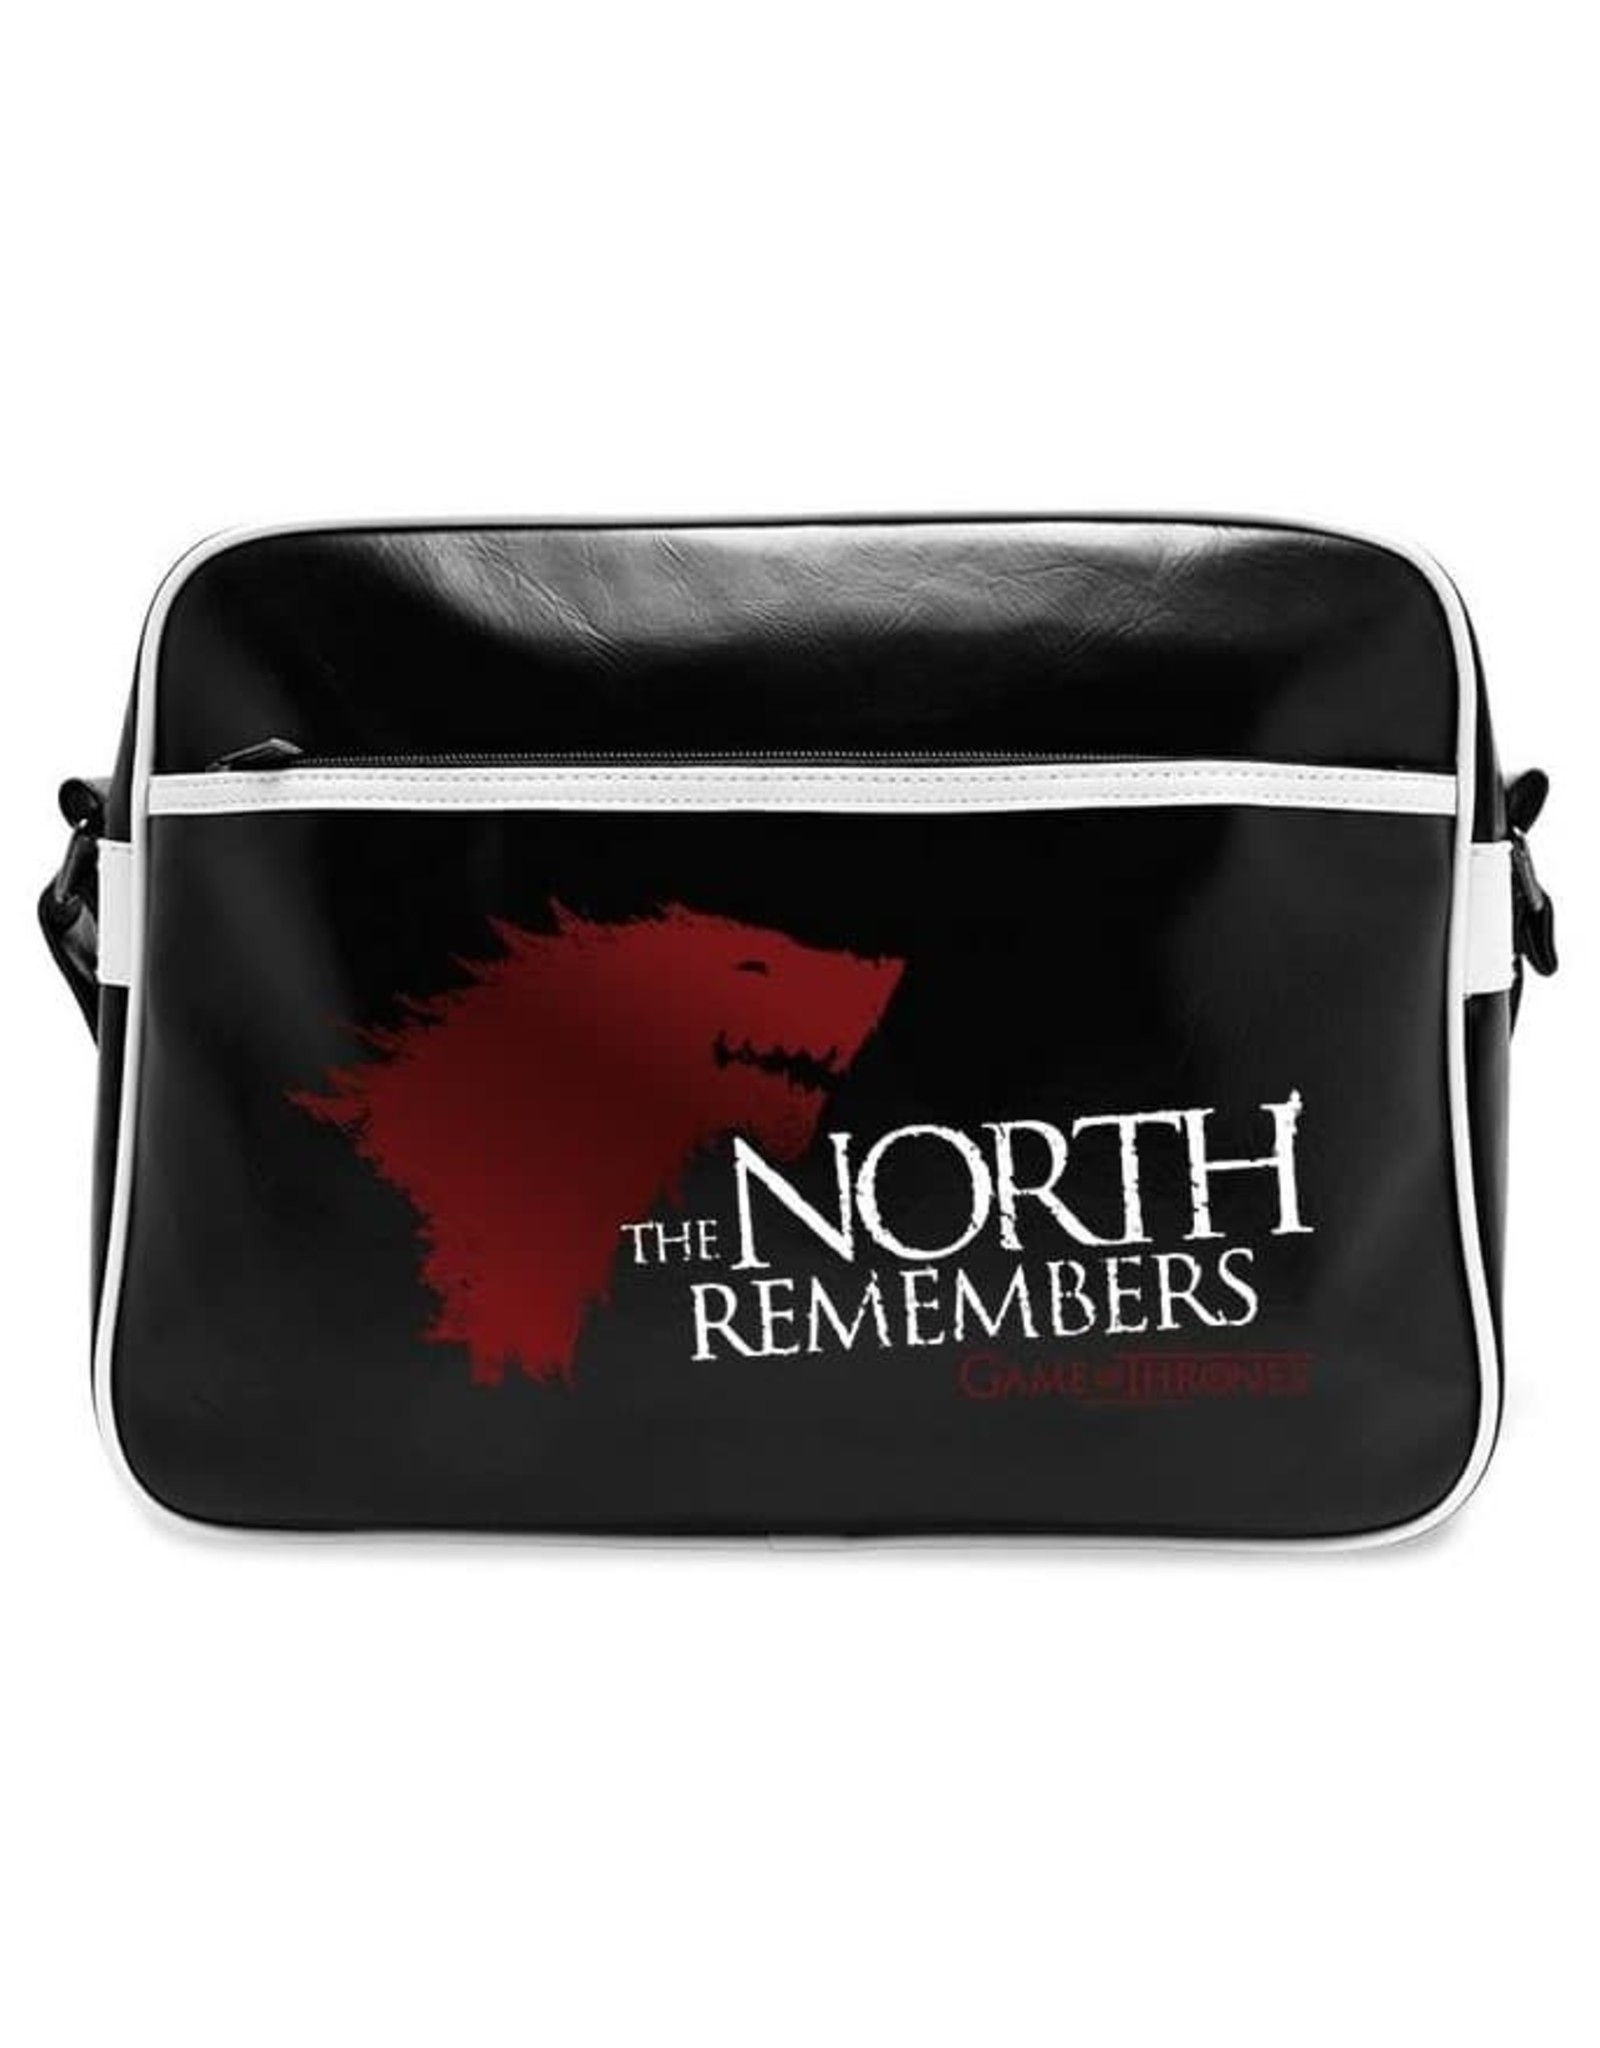 Game of Thrones Merchandise bags - Game of Thrones The North Remembers Messenger bag